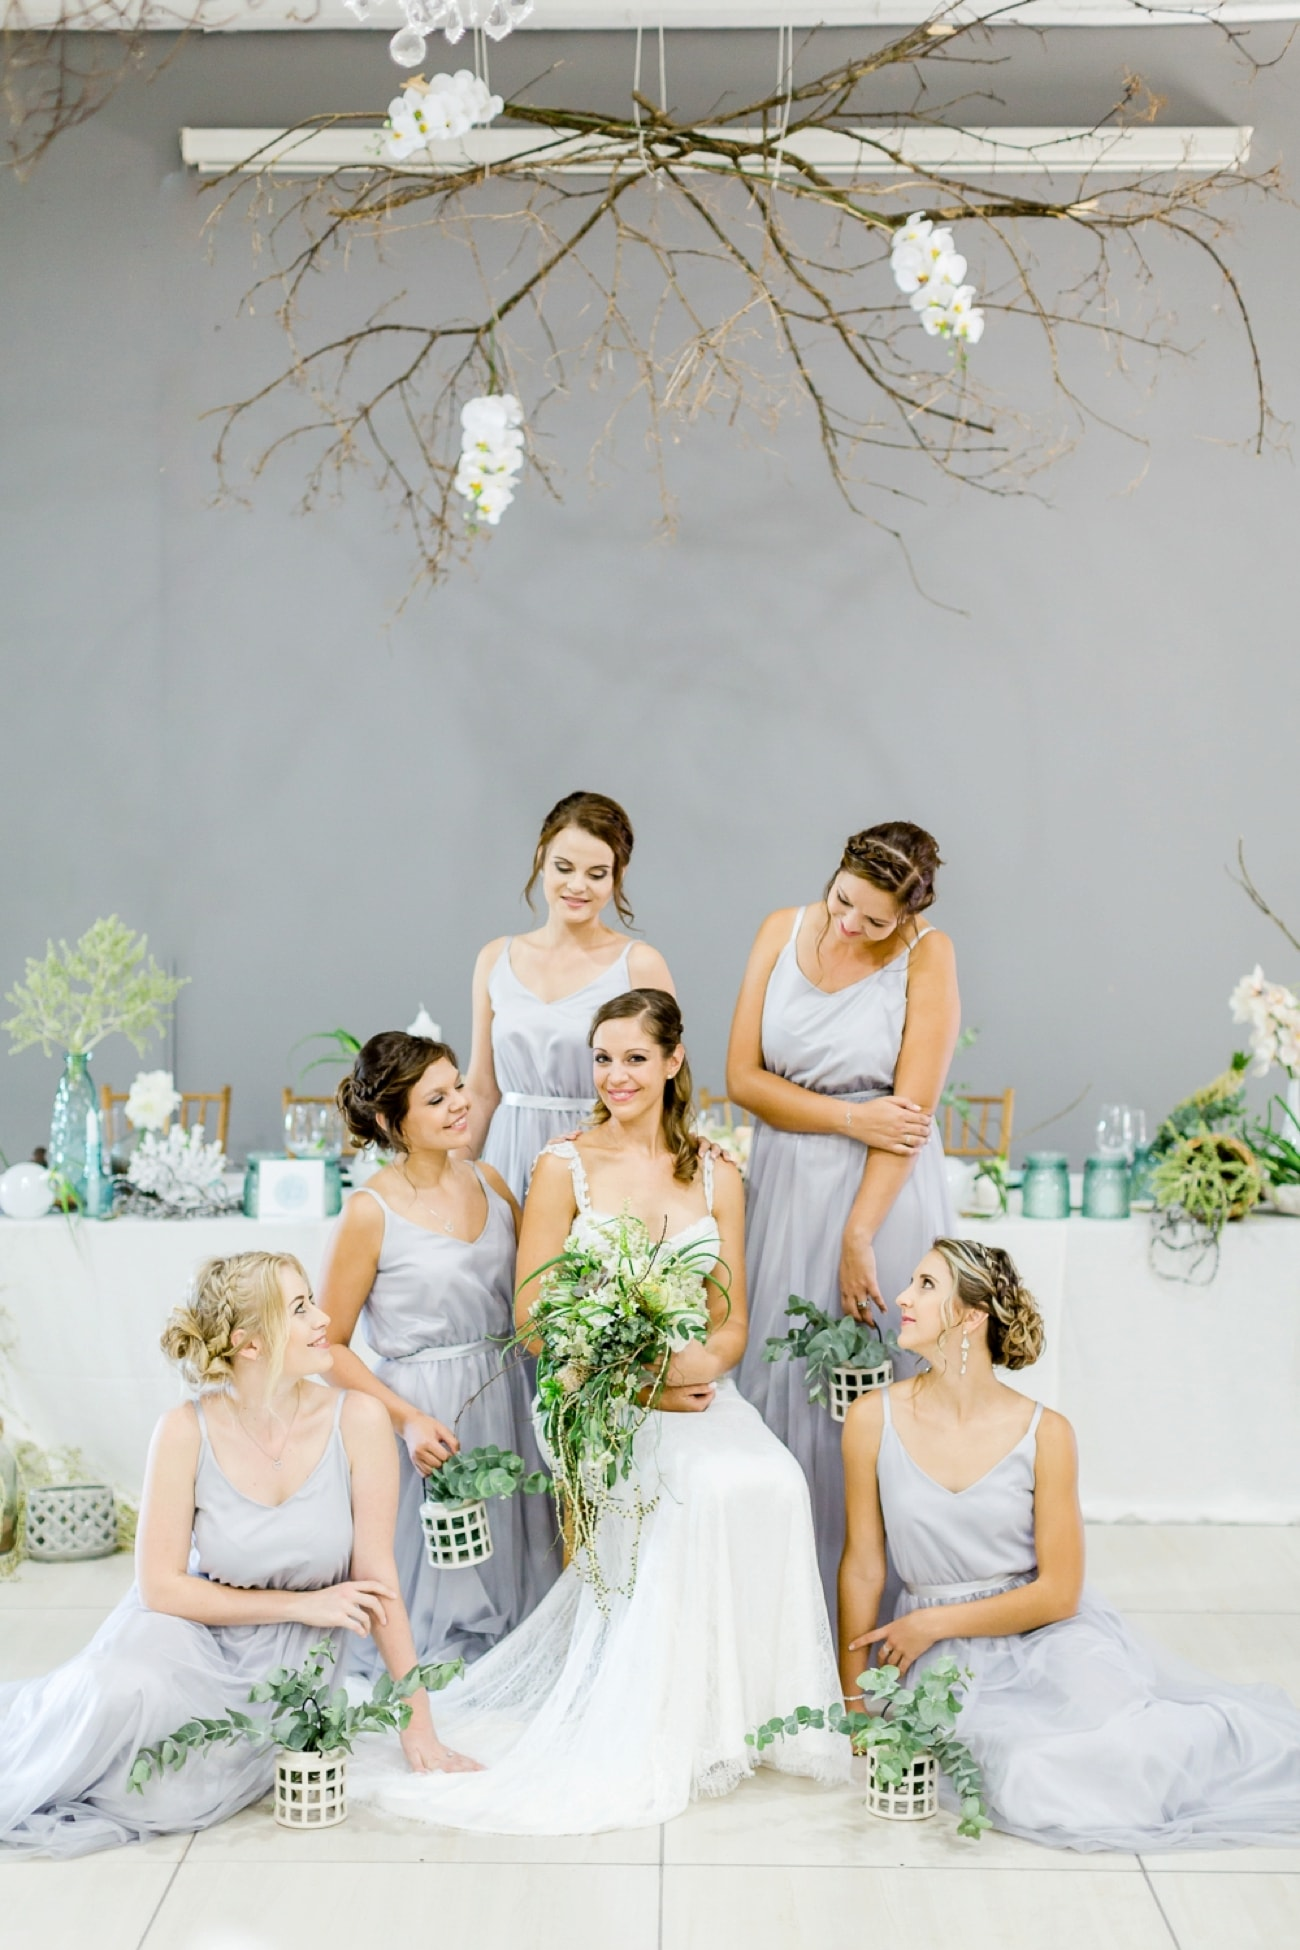 Bridesmaids in Grey Dresses | Credit: Grace Studios / Absolute Perfection